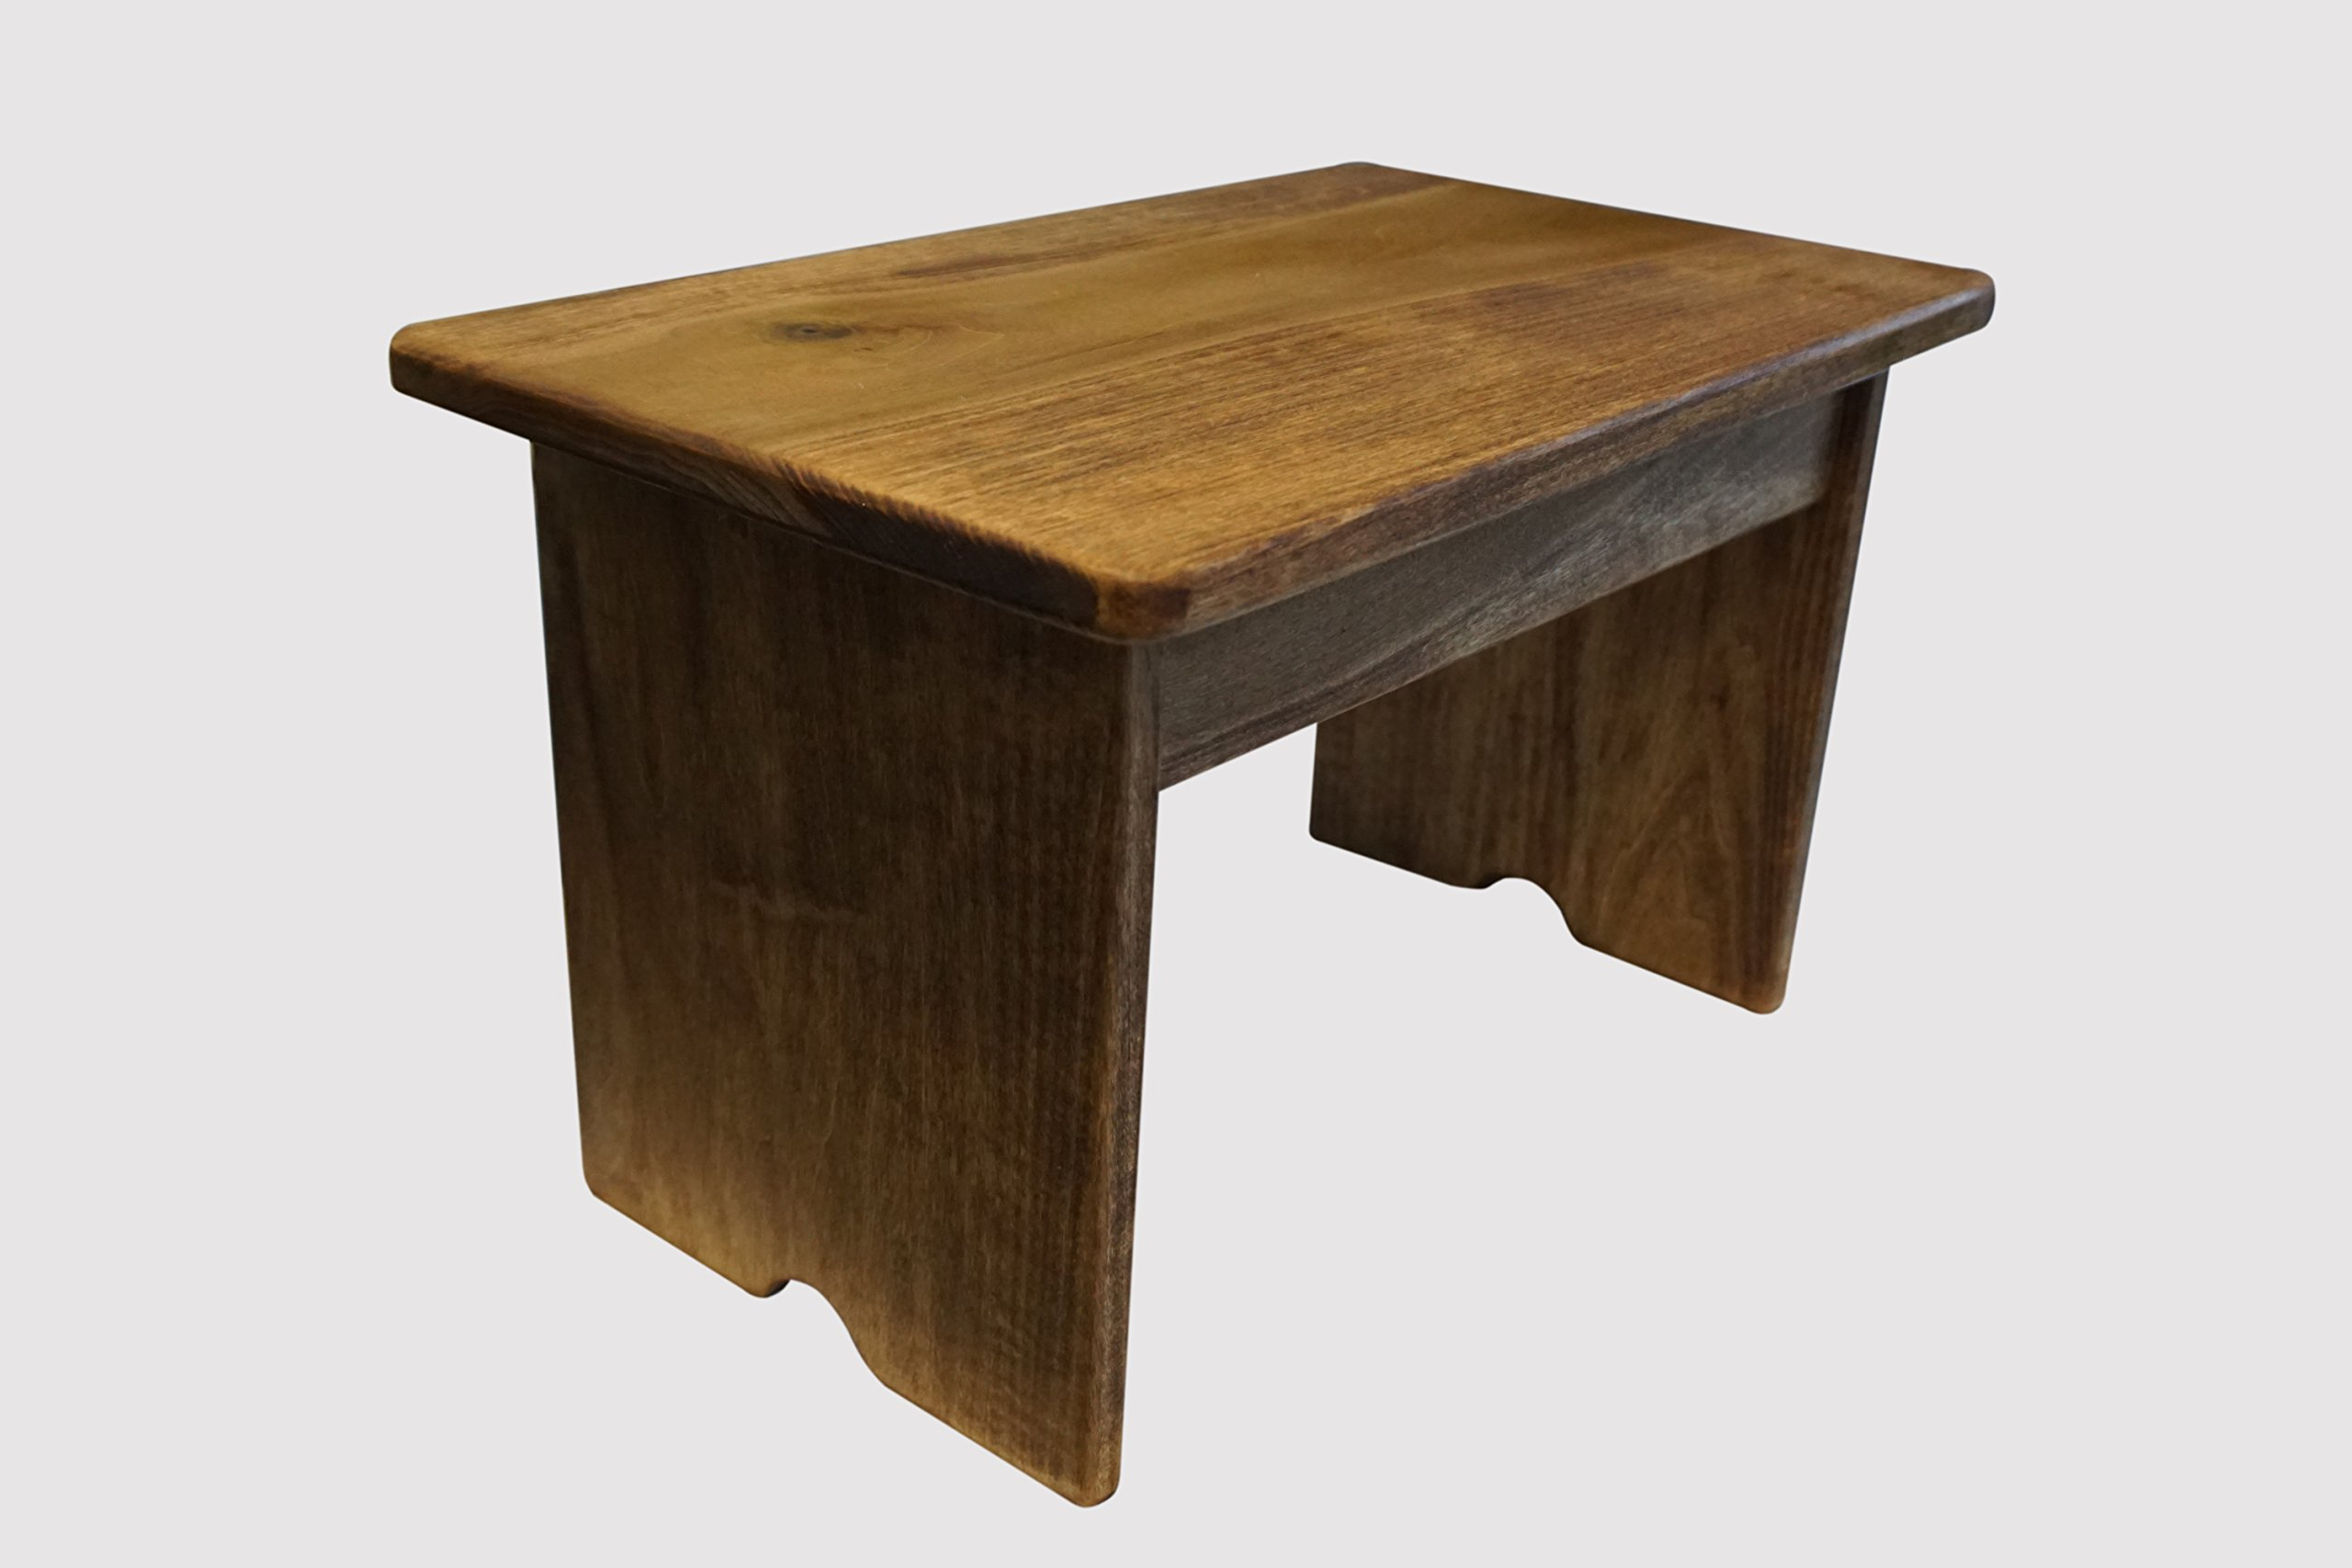 Step Stool Poplar Wood Maple Stain (Made in the USA)